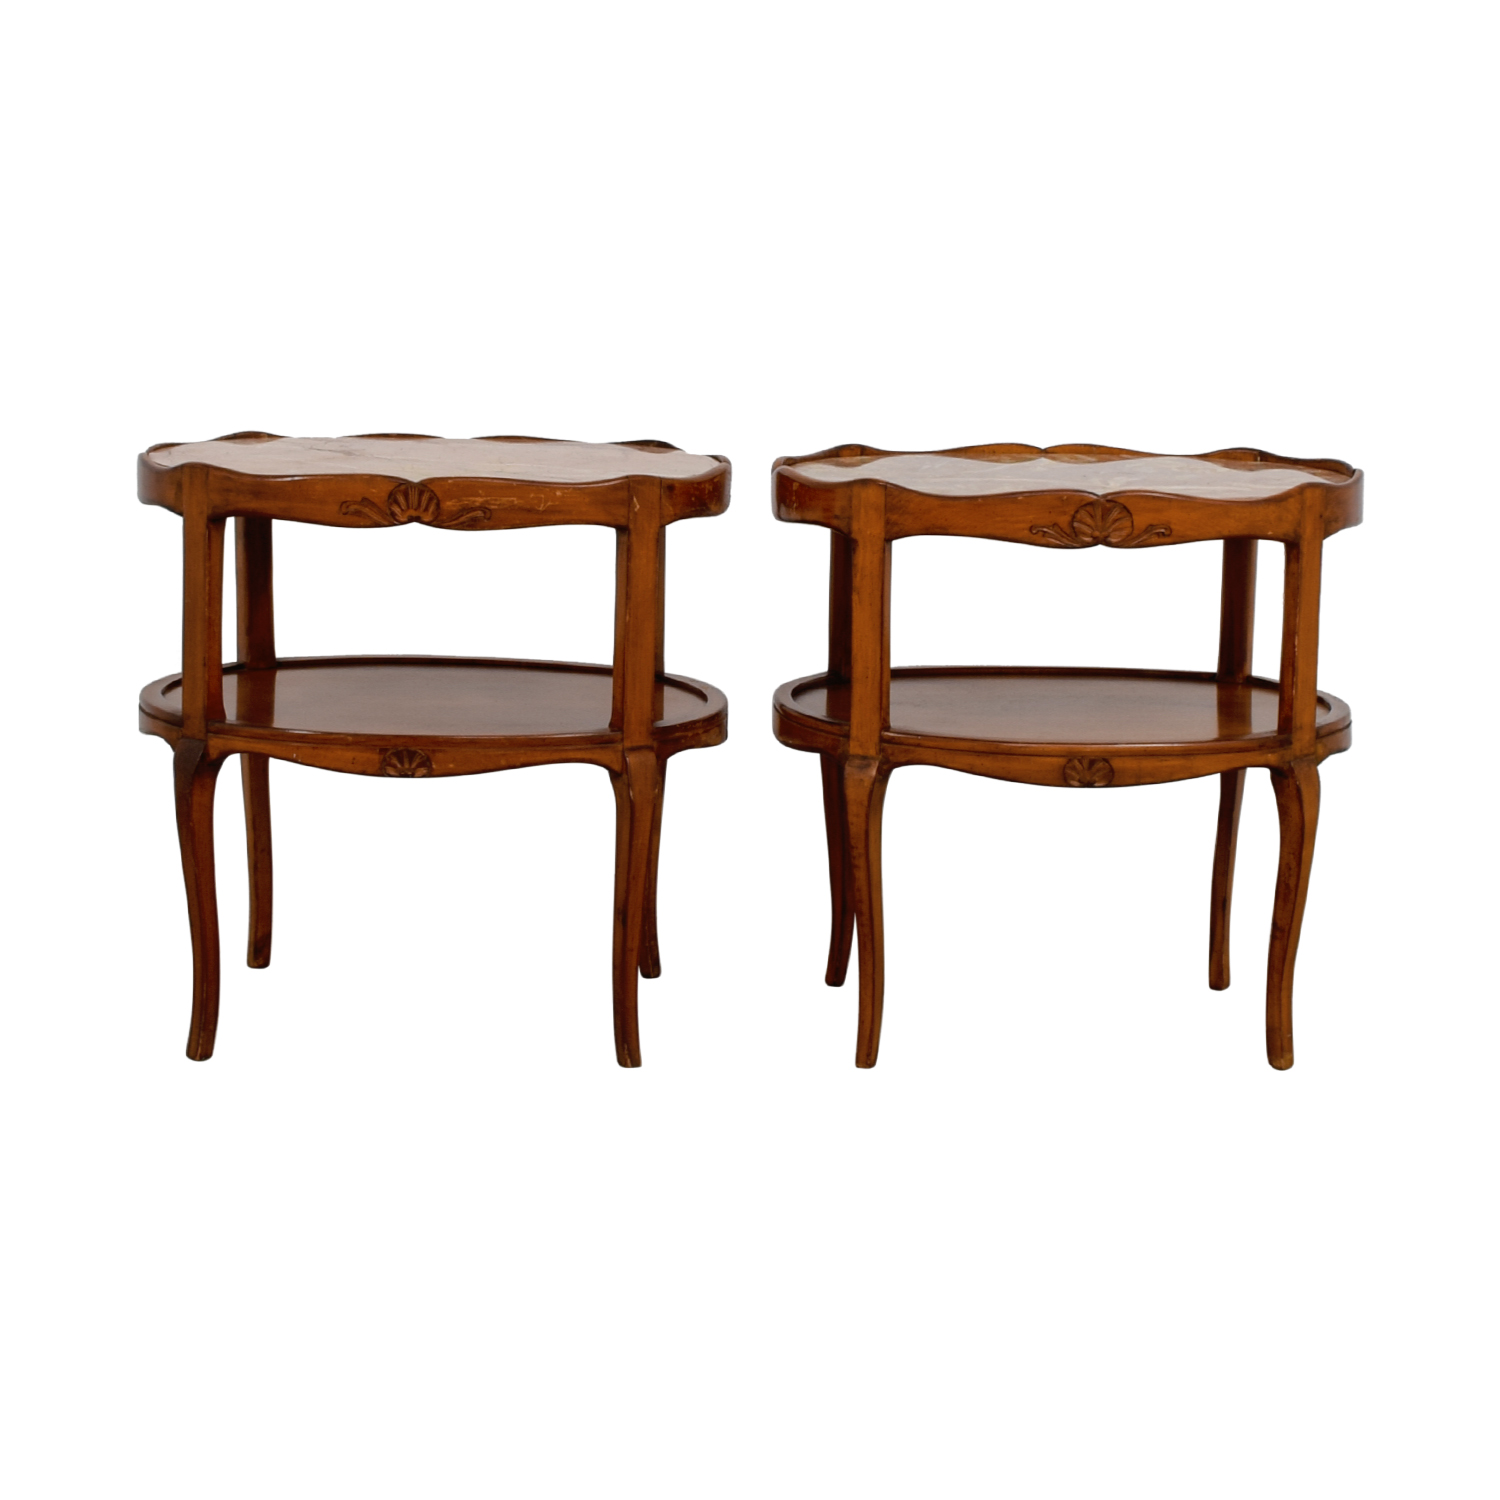 61 off marble topped cherry wood oval side tables tables for Mauble furniture